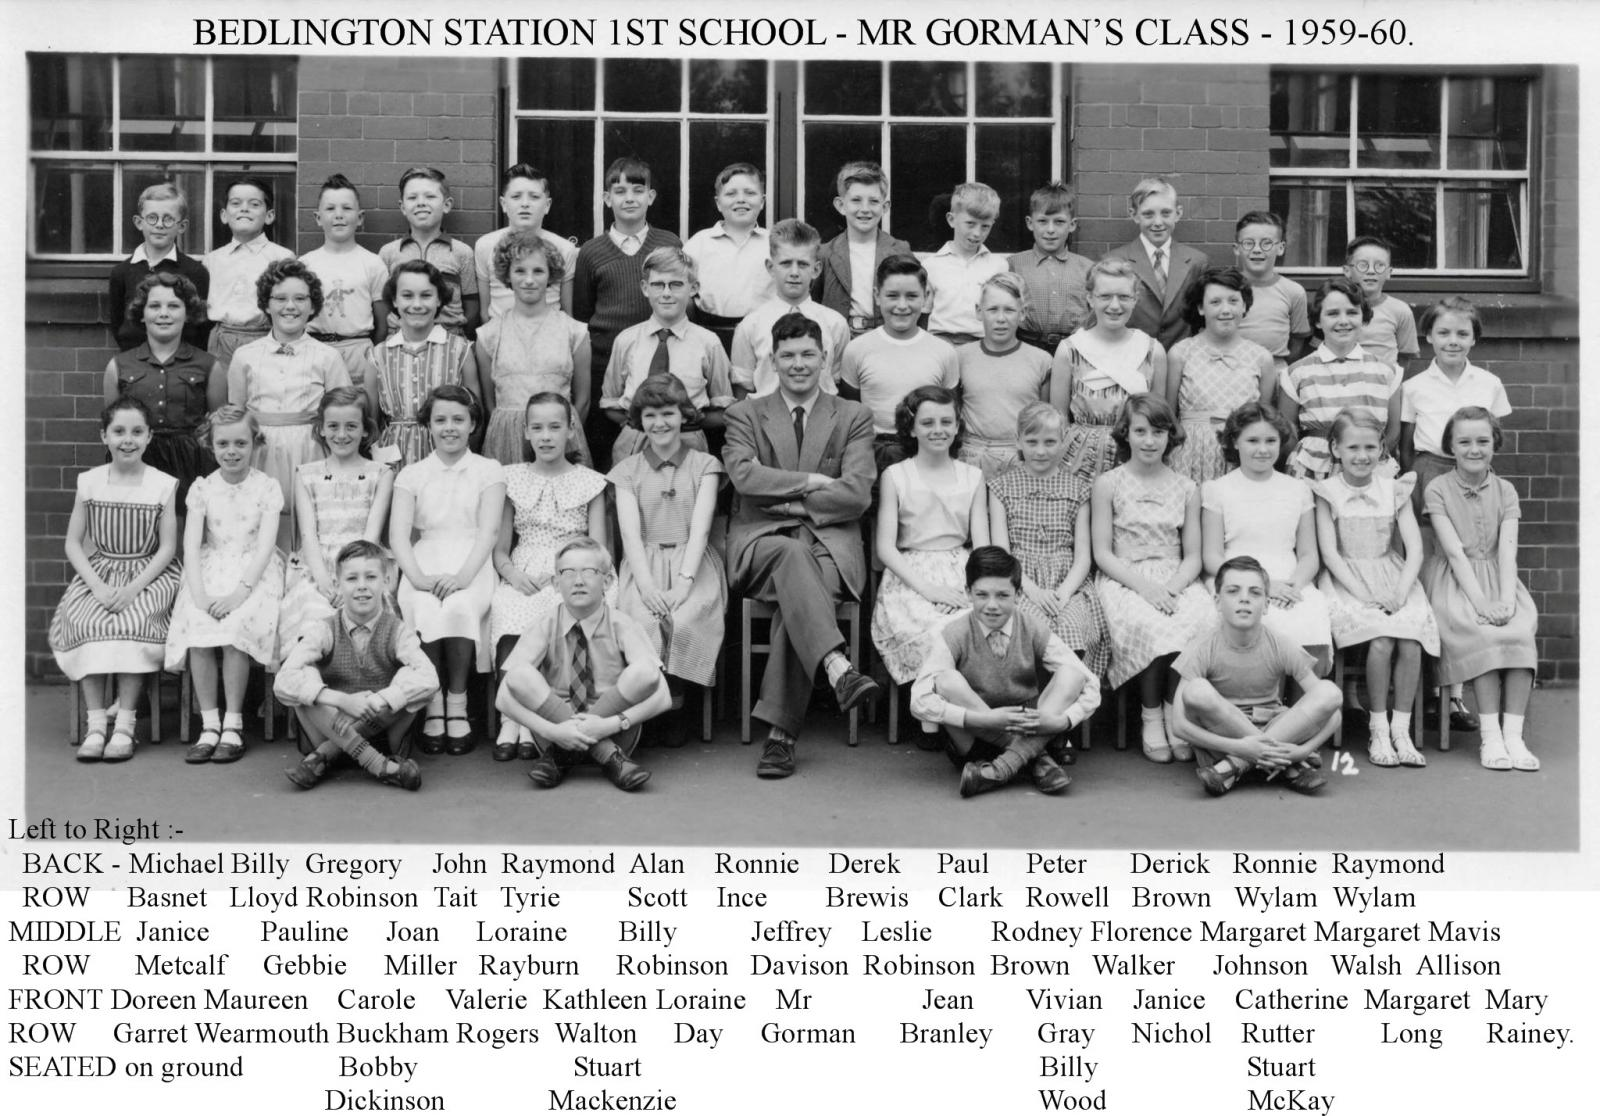 Bedlington Station1st school 1959-60 MrGormans class